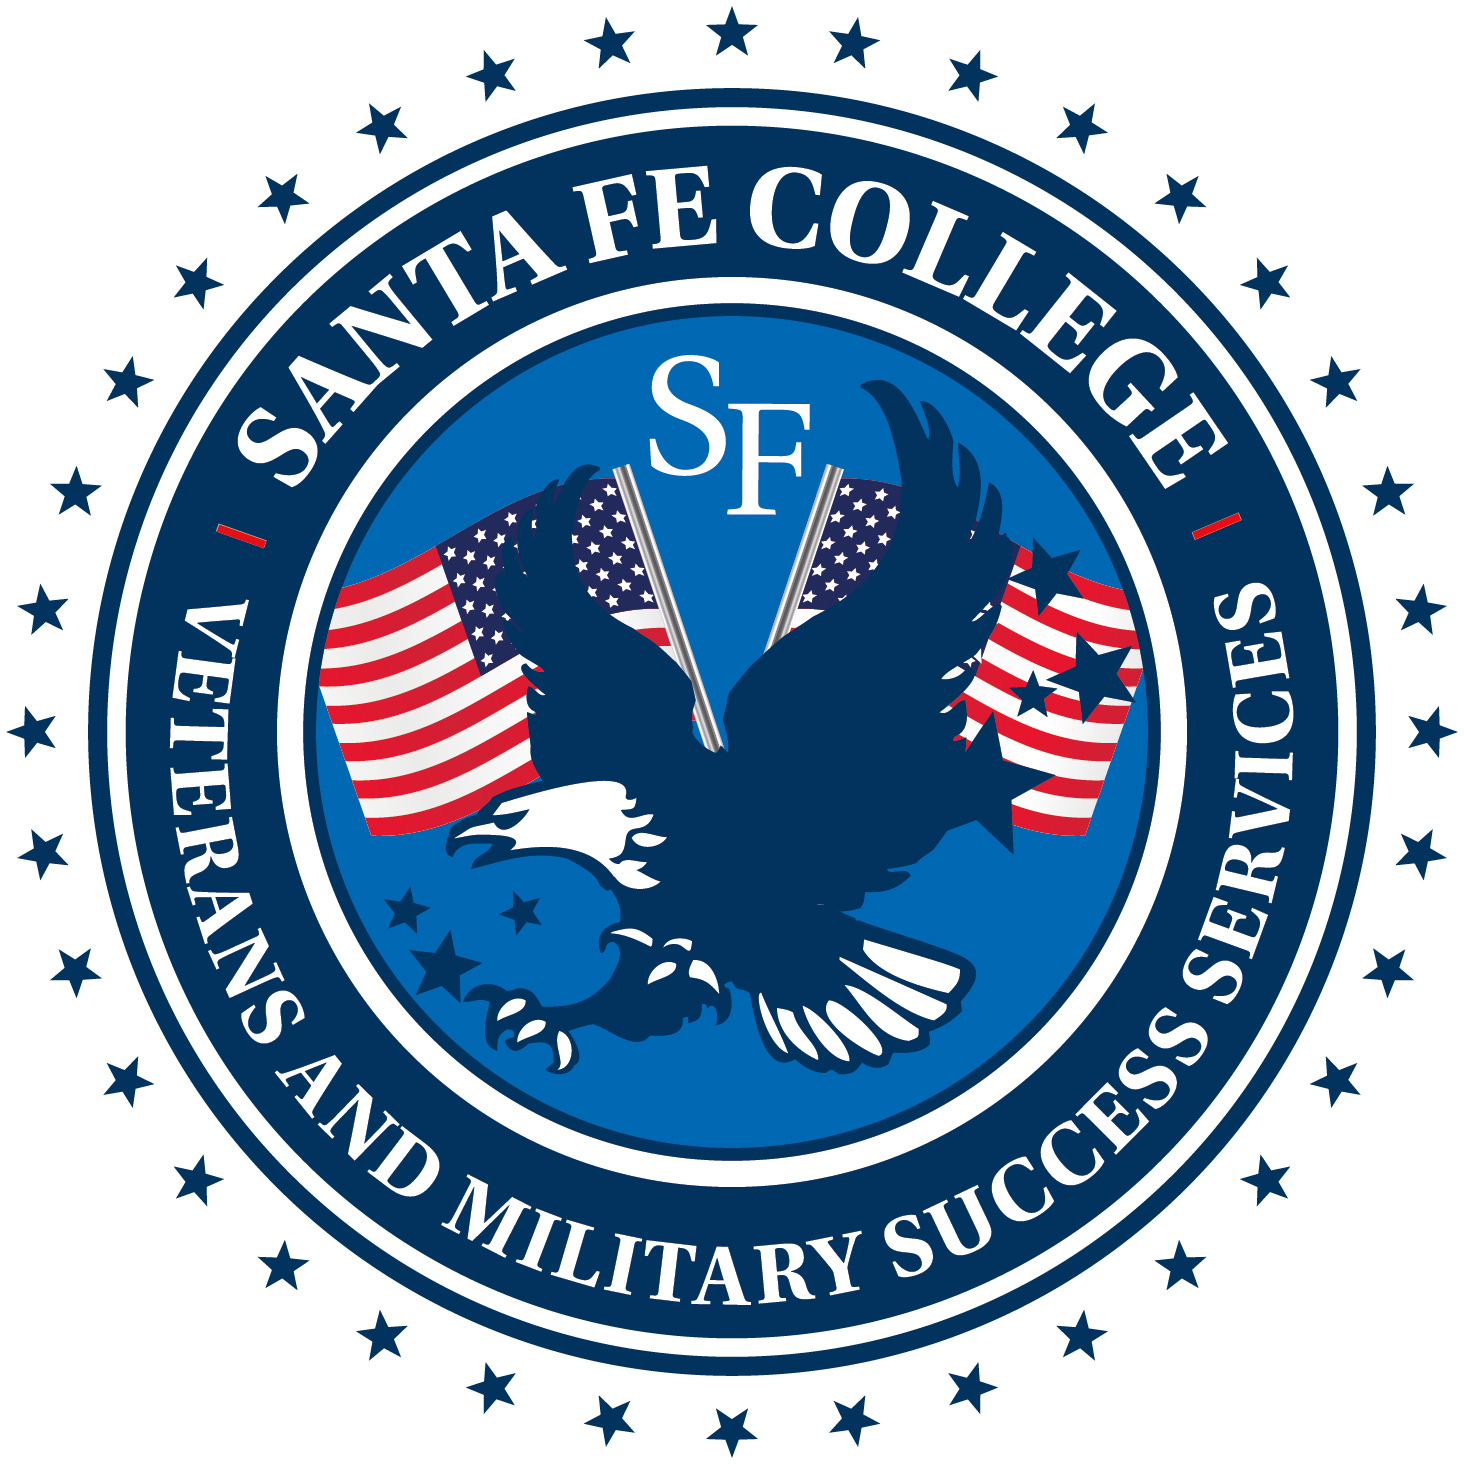 Veterans and Military Success Services Created Seal